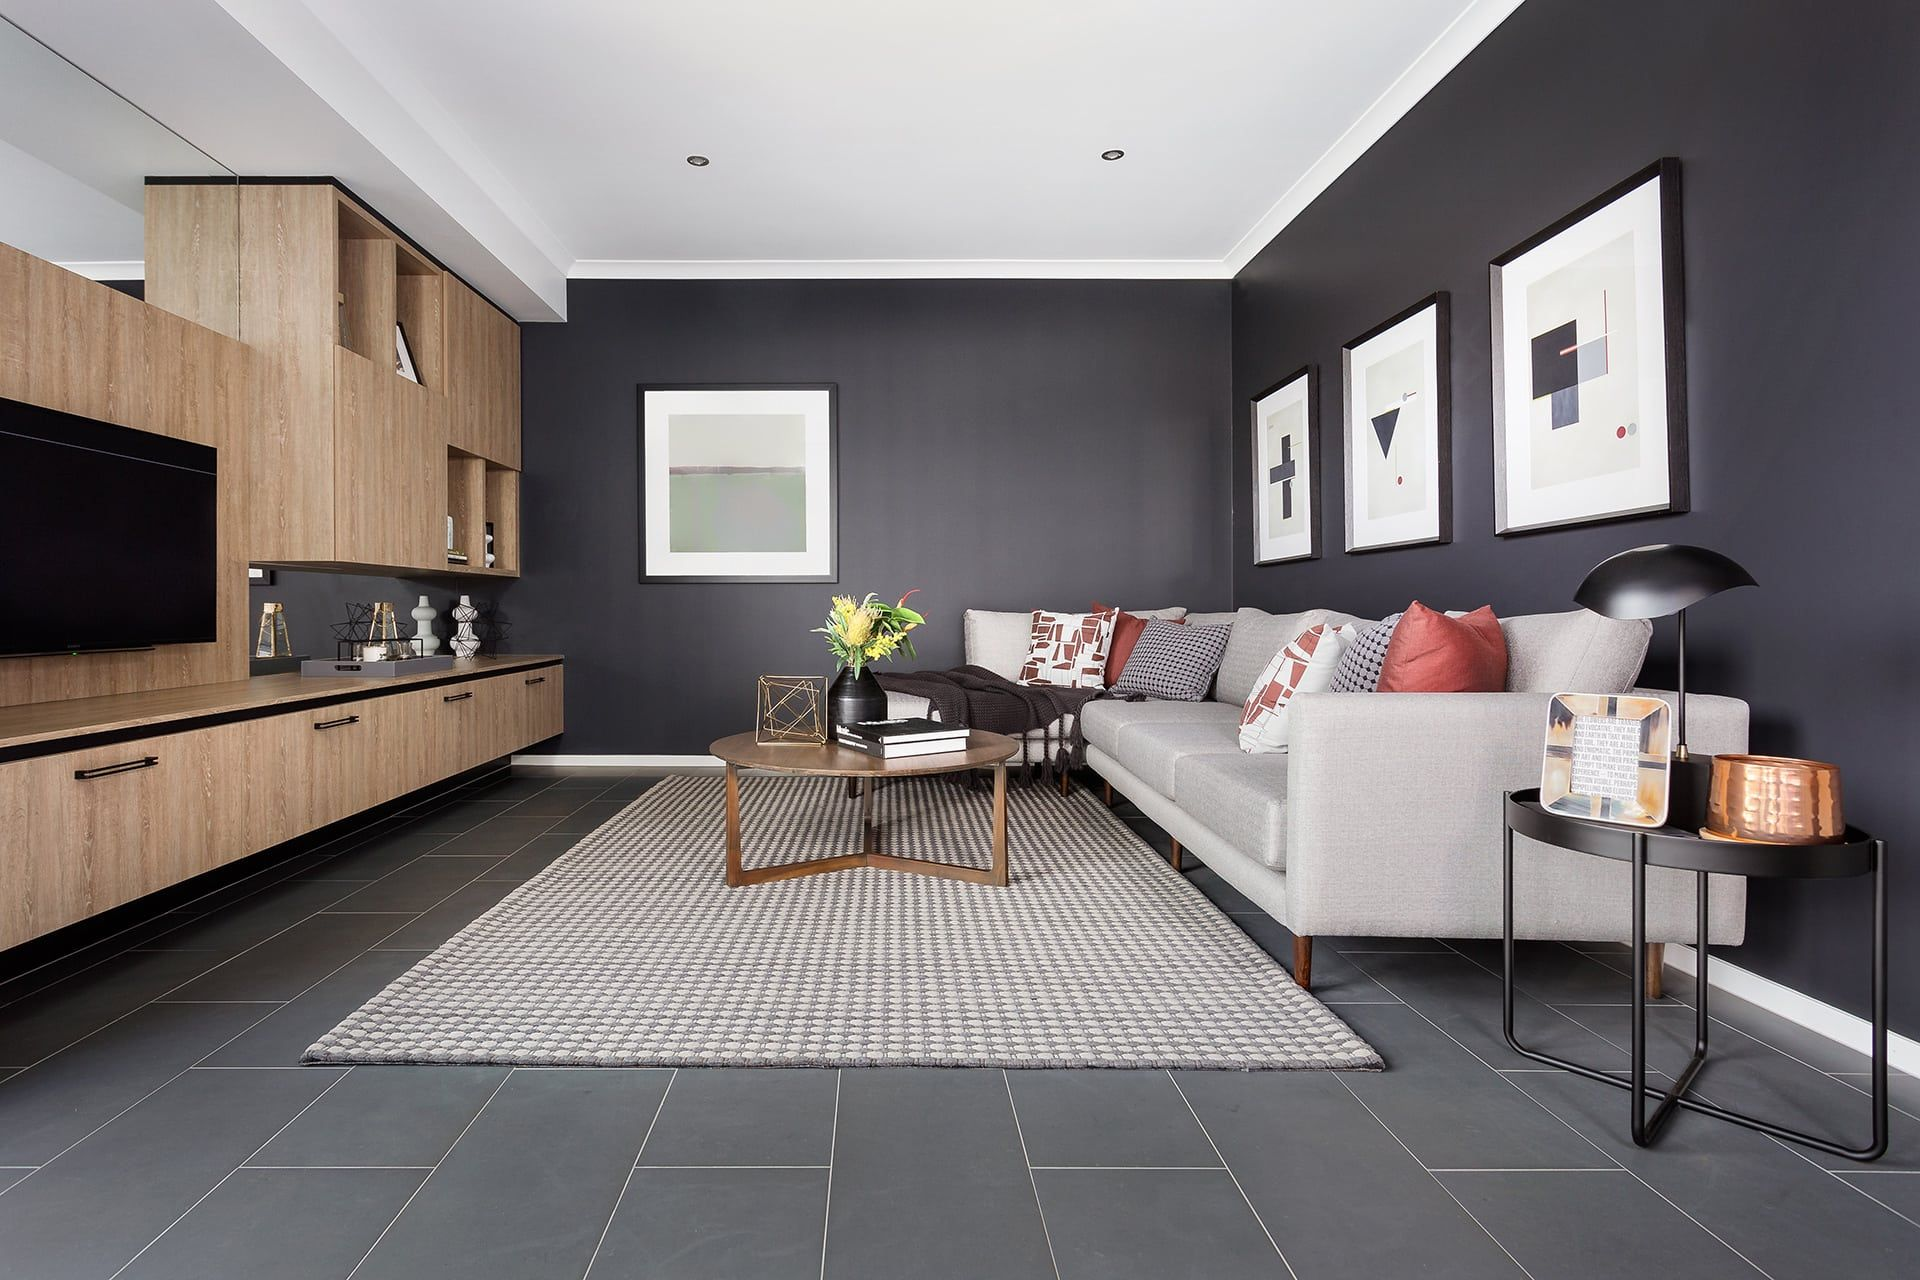 Dark Grey Living Room Wall With Floor Tiles In Living Room From Metricon Living Room Tiles Grey Tiles Living Room Grey Flooring Living Room